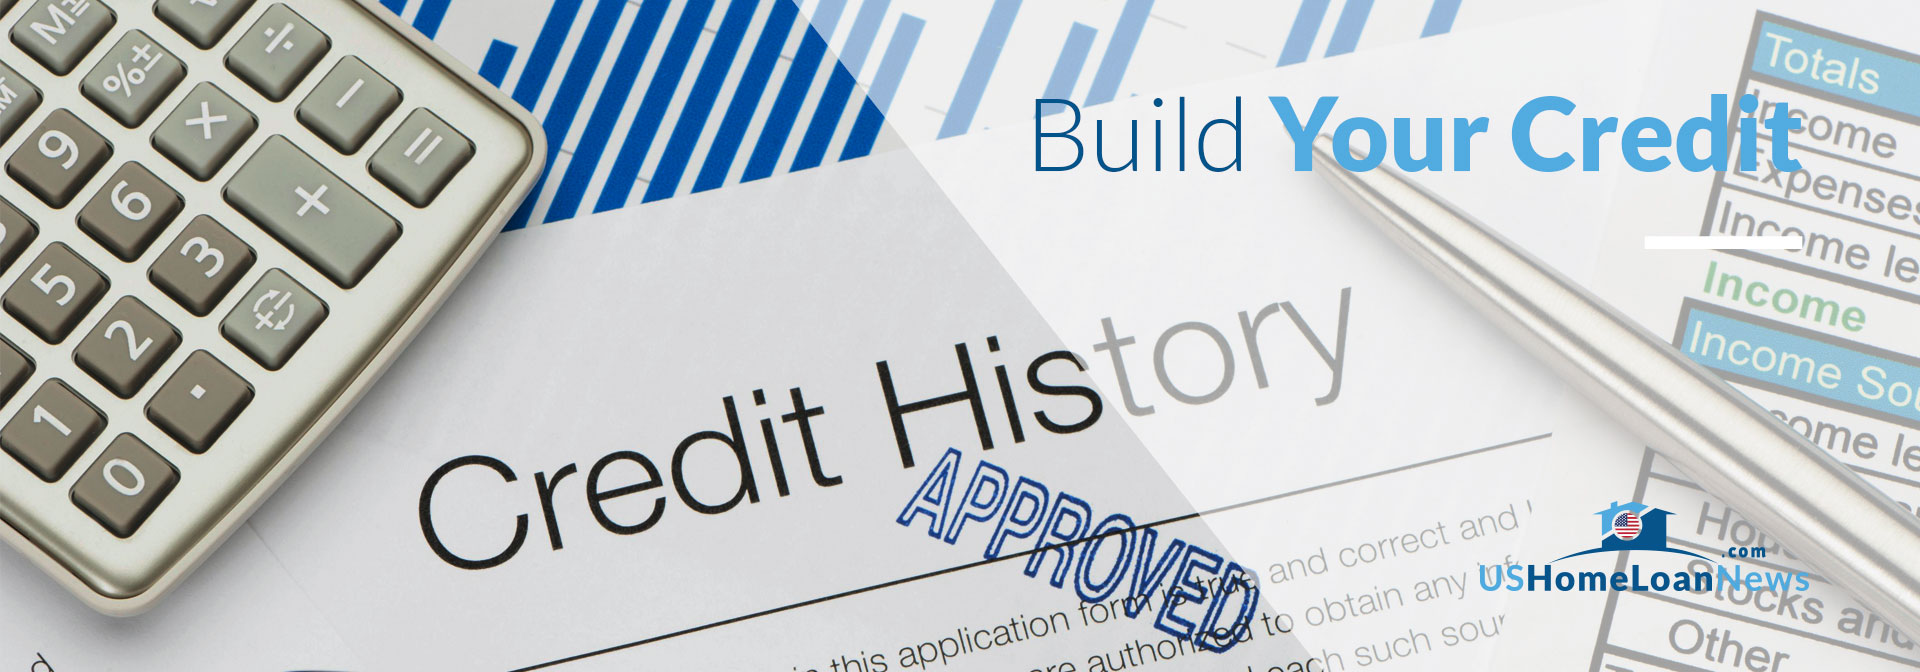 Build Your Credit – What are the Best Options? Credit History to build your credit in US Home Loan News